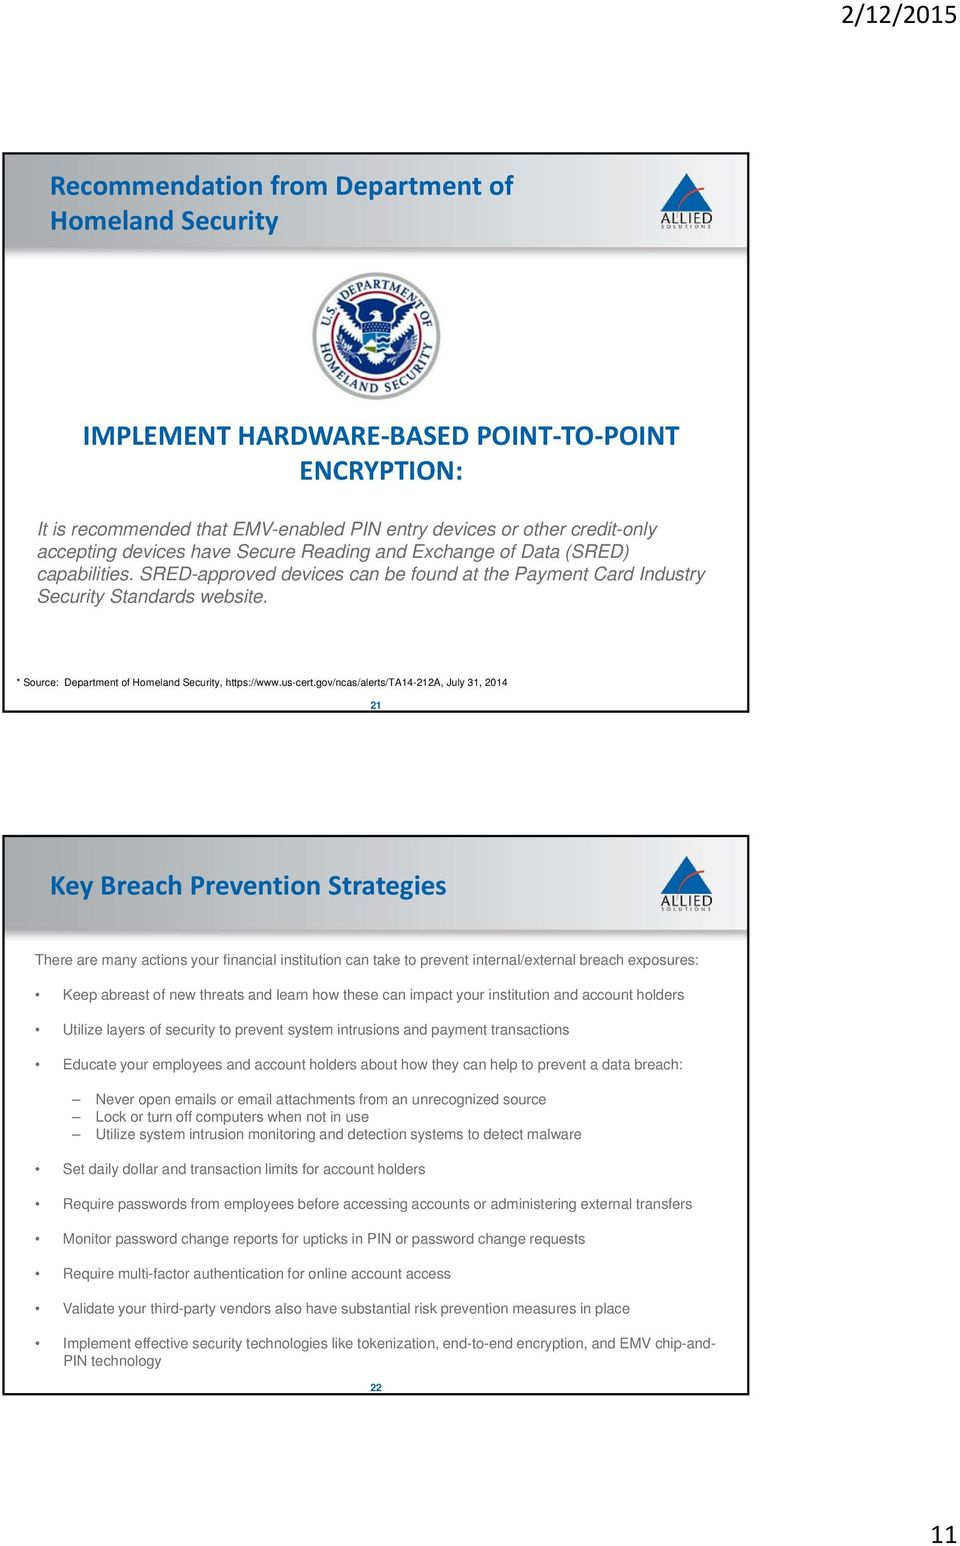 * Source: Department of Homeland Security, https://www.us-cert.